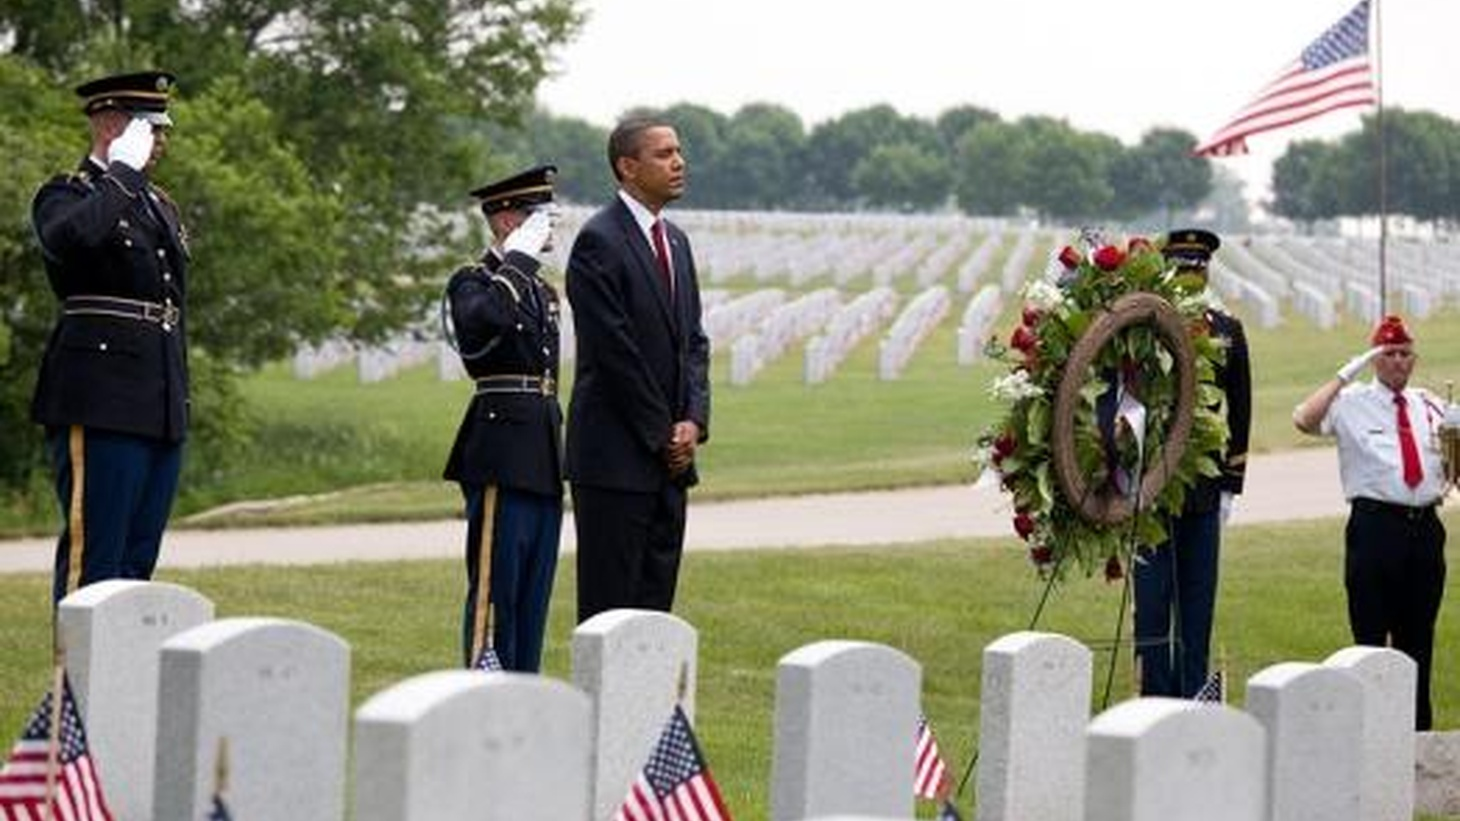 Memorial Day might seem as American as Apple Pie, but it takes on different forms for different people at different times. On this rebroadcast of today's To the Point, we hear about memorializing the war dead from Arlington National Cemetery to the Internet. Also, the official beginning of hurricane season, and Apple overcomes Microsoft.